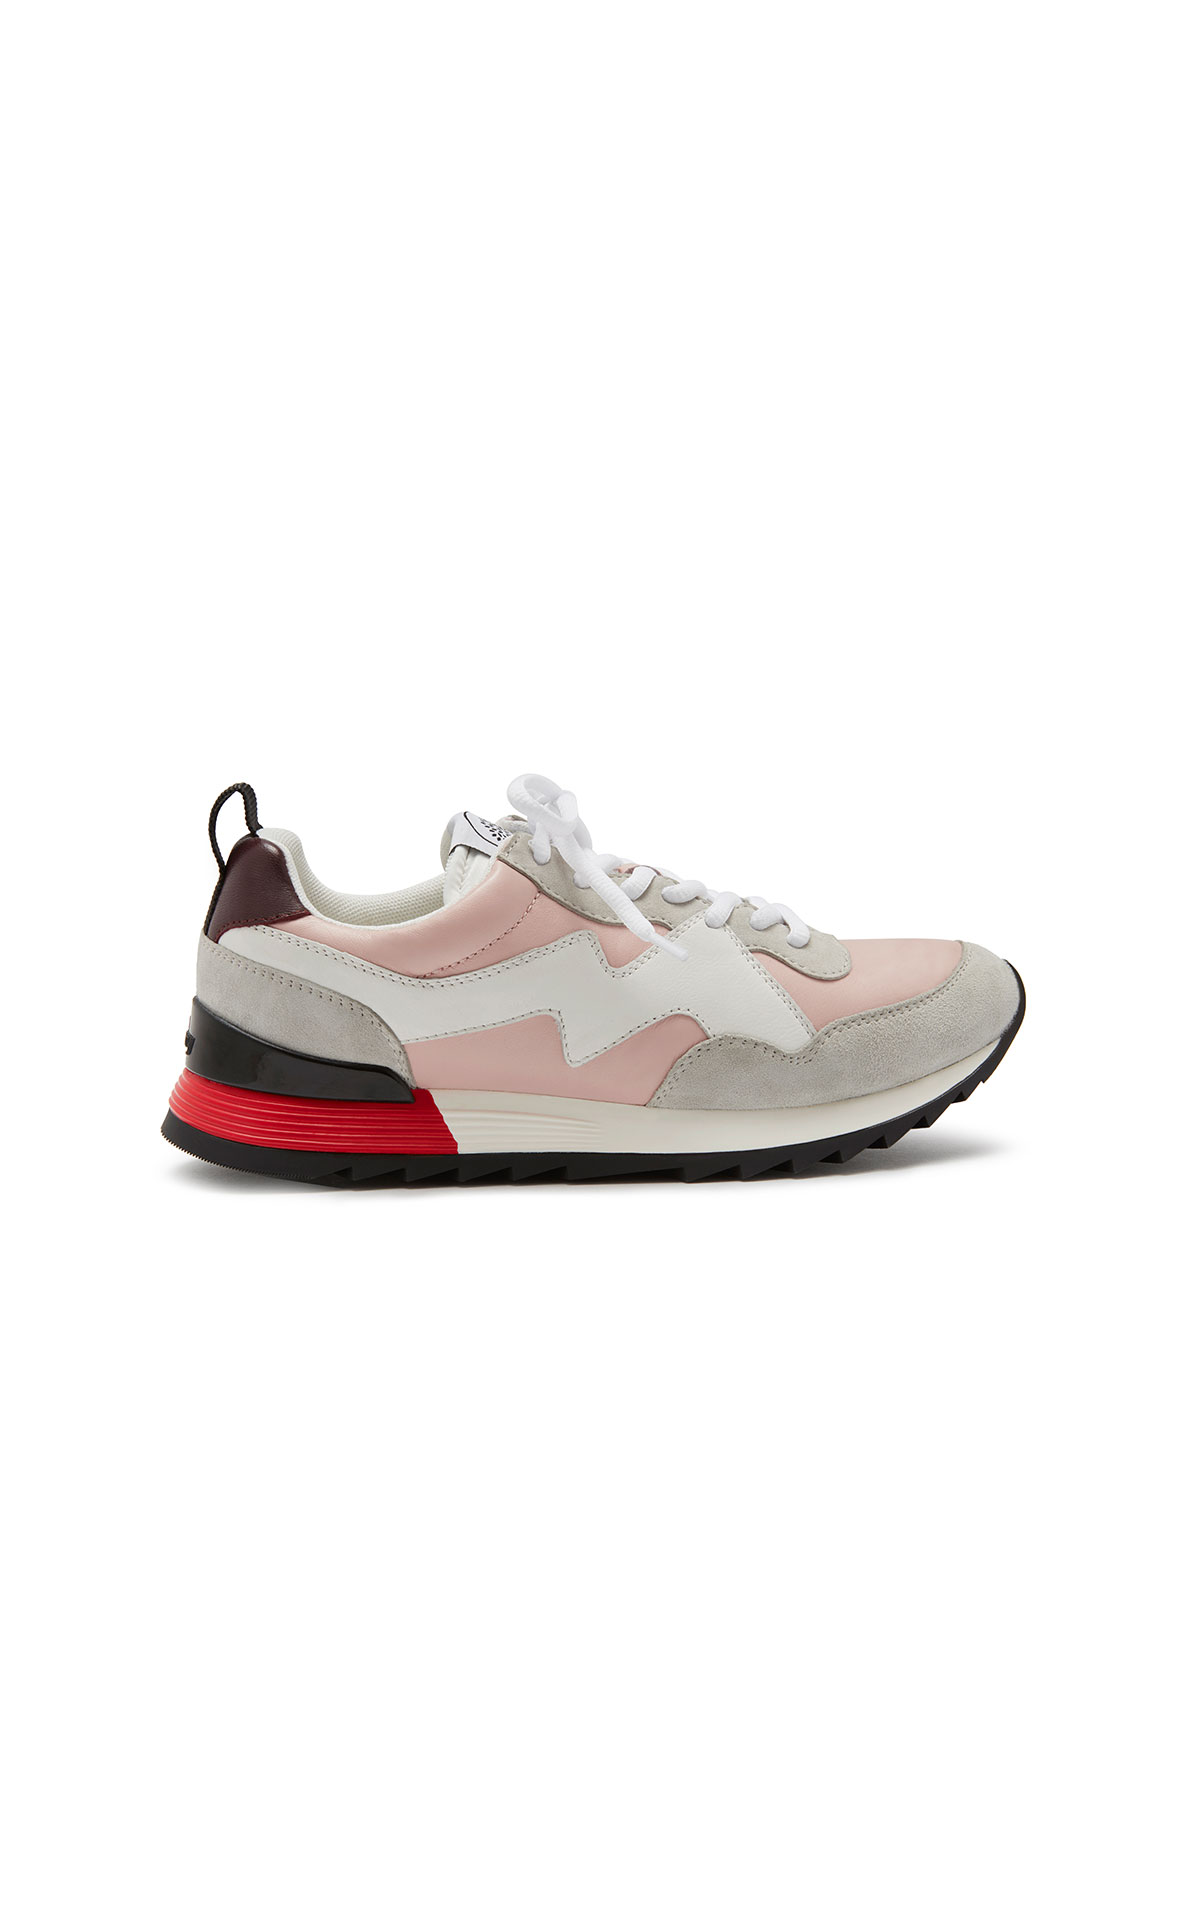 Mulberry My-1 lace-up sneaker soft lamb nappa icy pink-white from Bicester Village